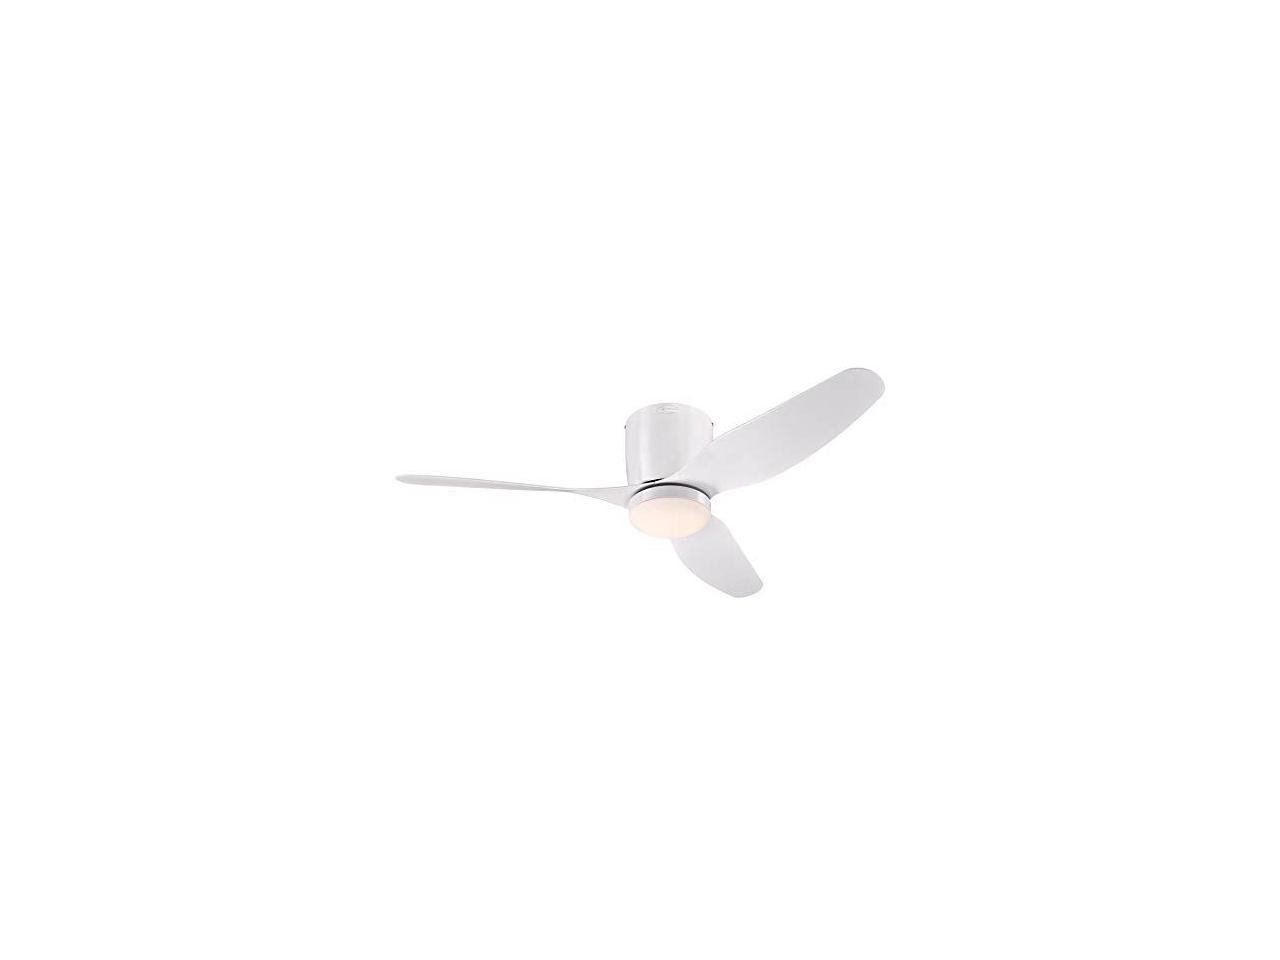 Westinghouse Lighting 7225100 Carla Ceiling Fan With Light And Remote Control 46 Inch White Newegg Com